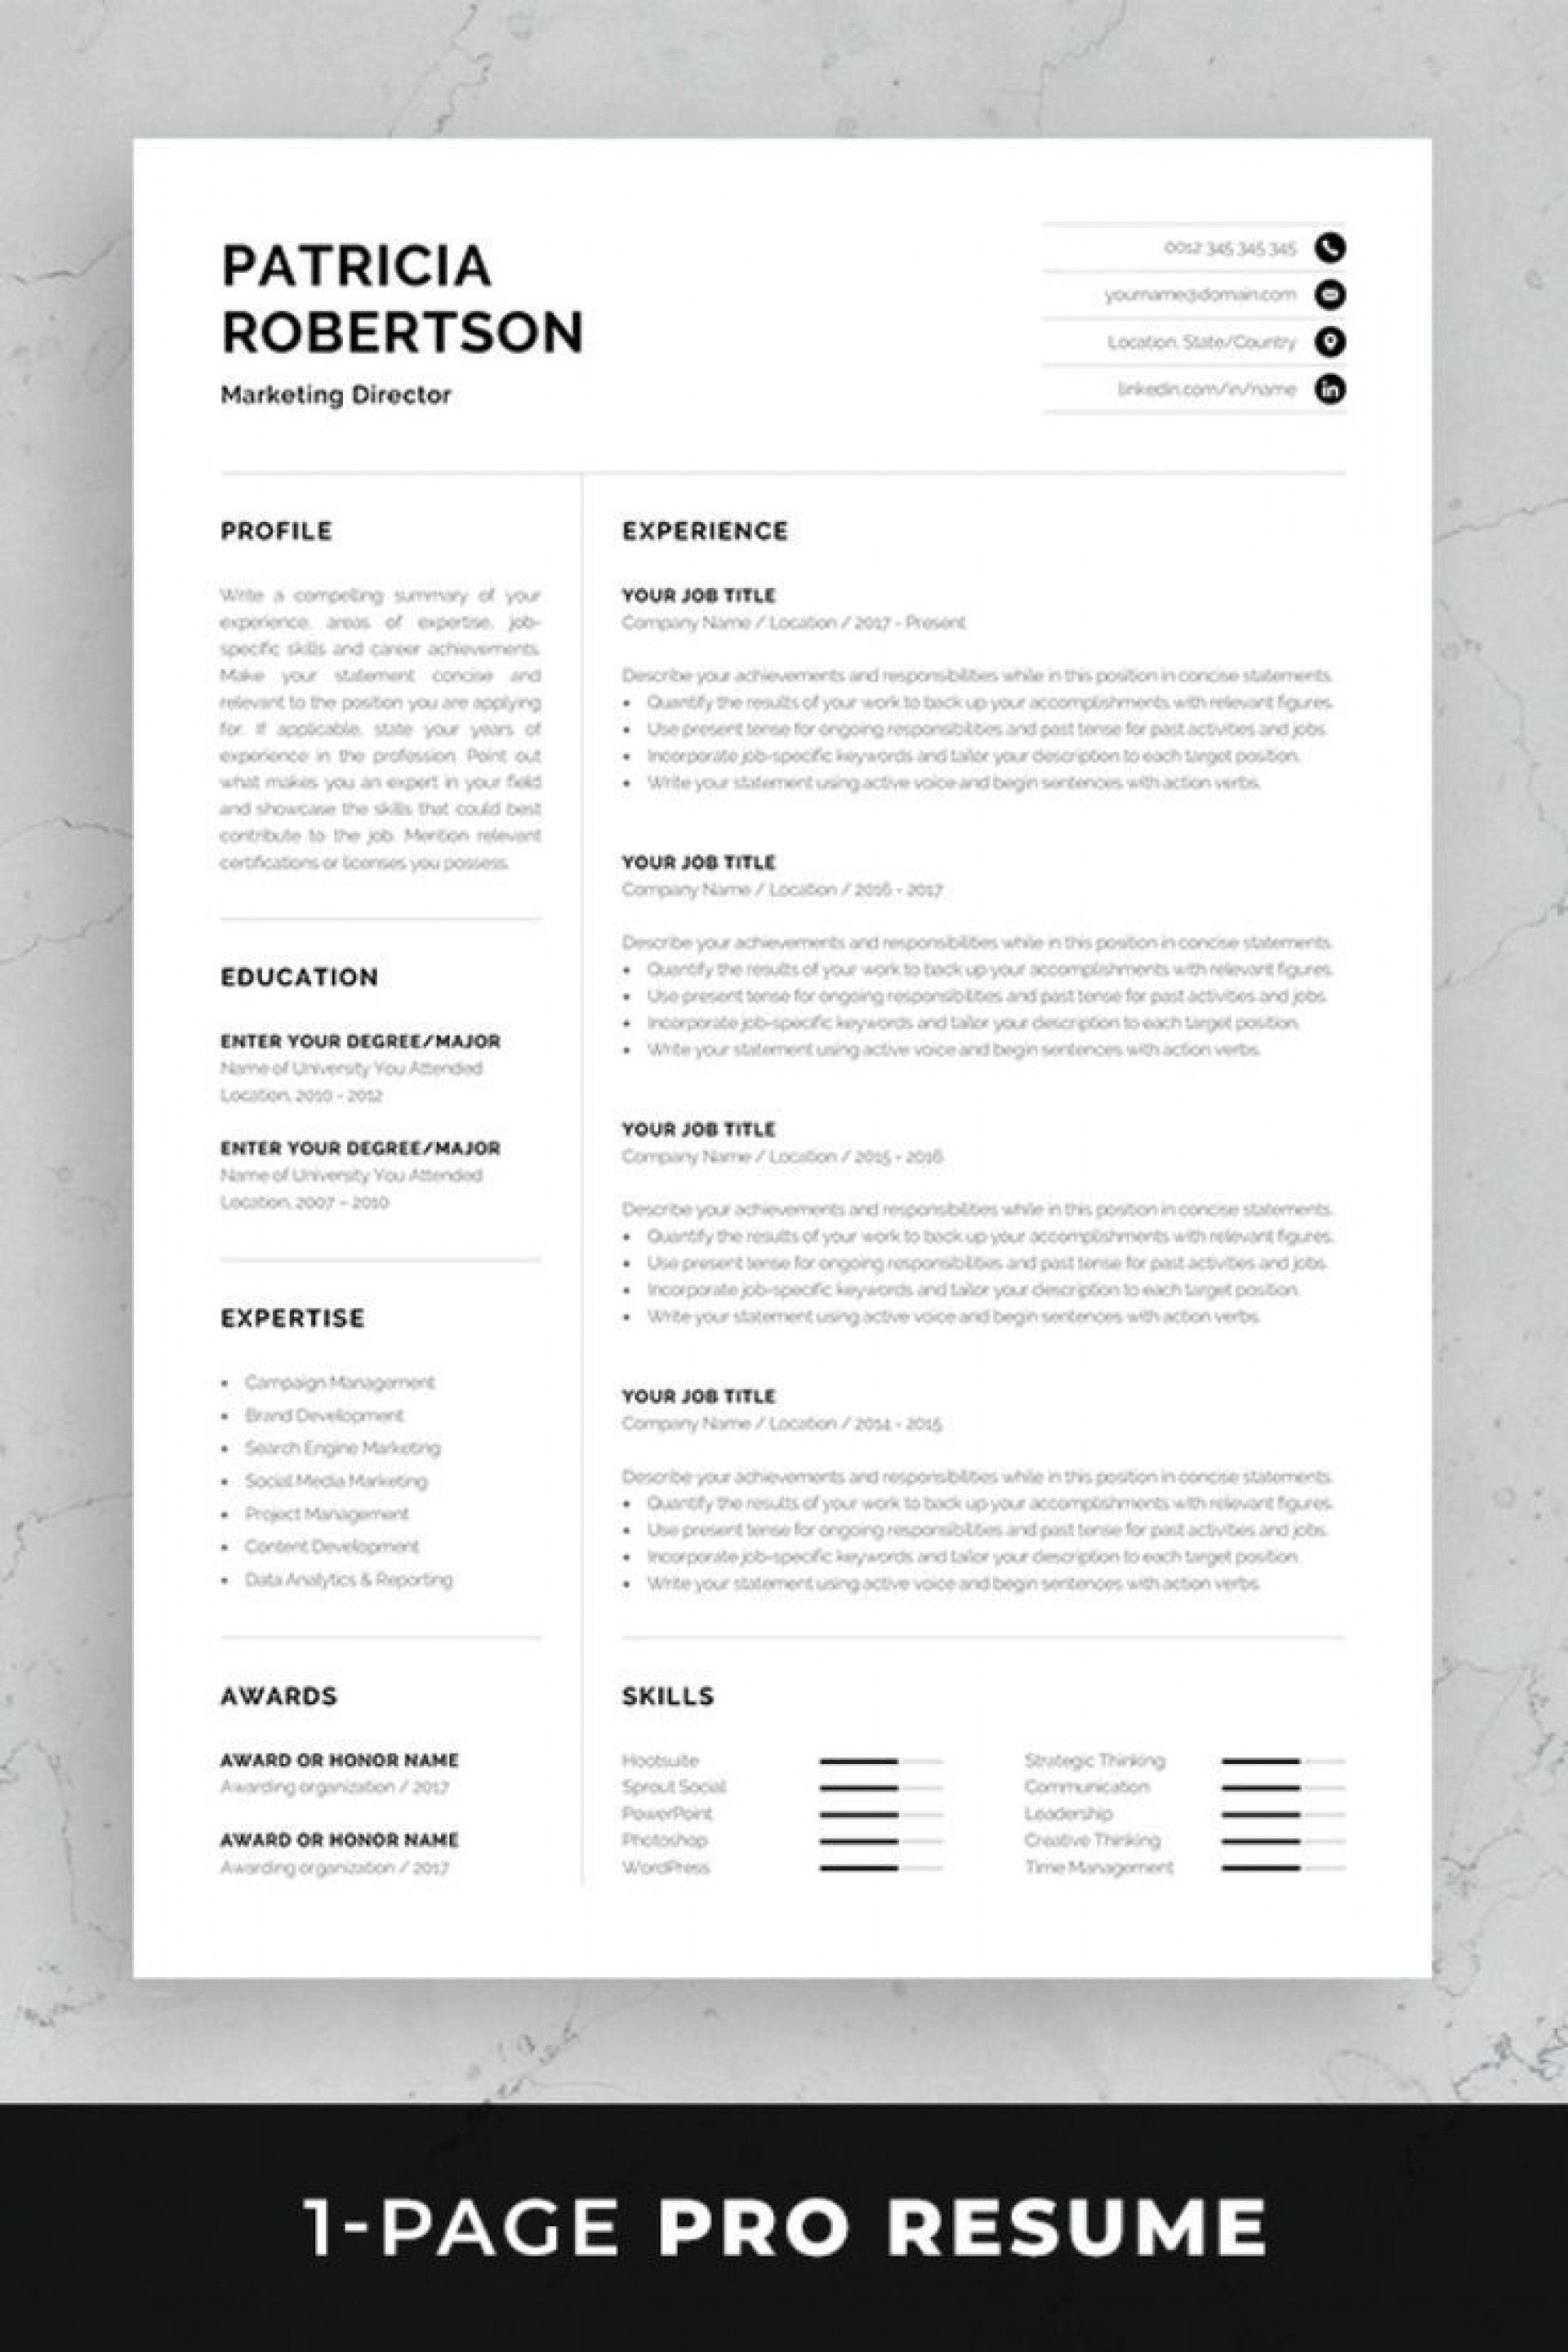 002 Simple 1 Page Resume Template Concept  Templates One Basic Word Free Html Download1920